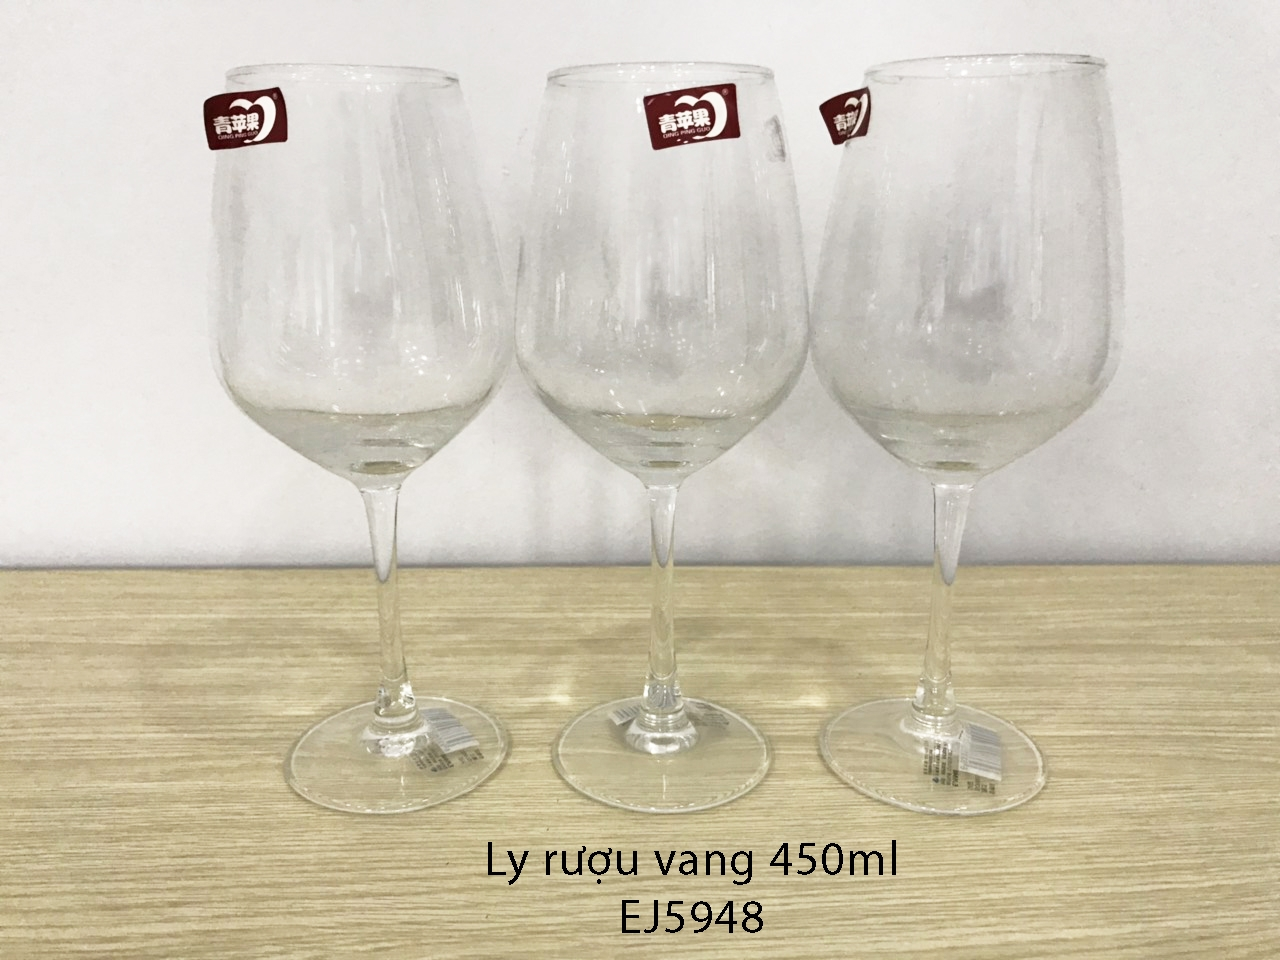 Ly rượu vang 450ml